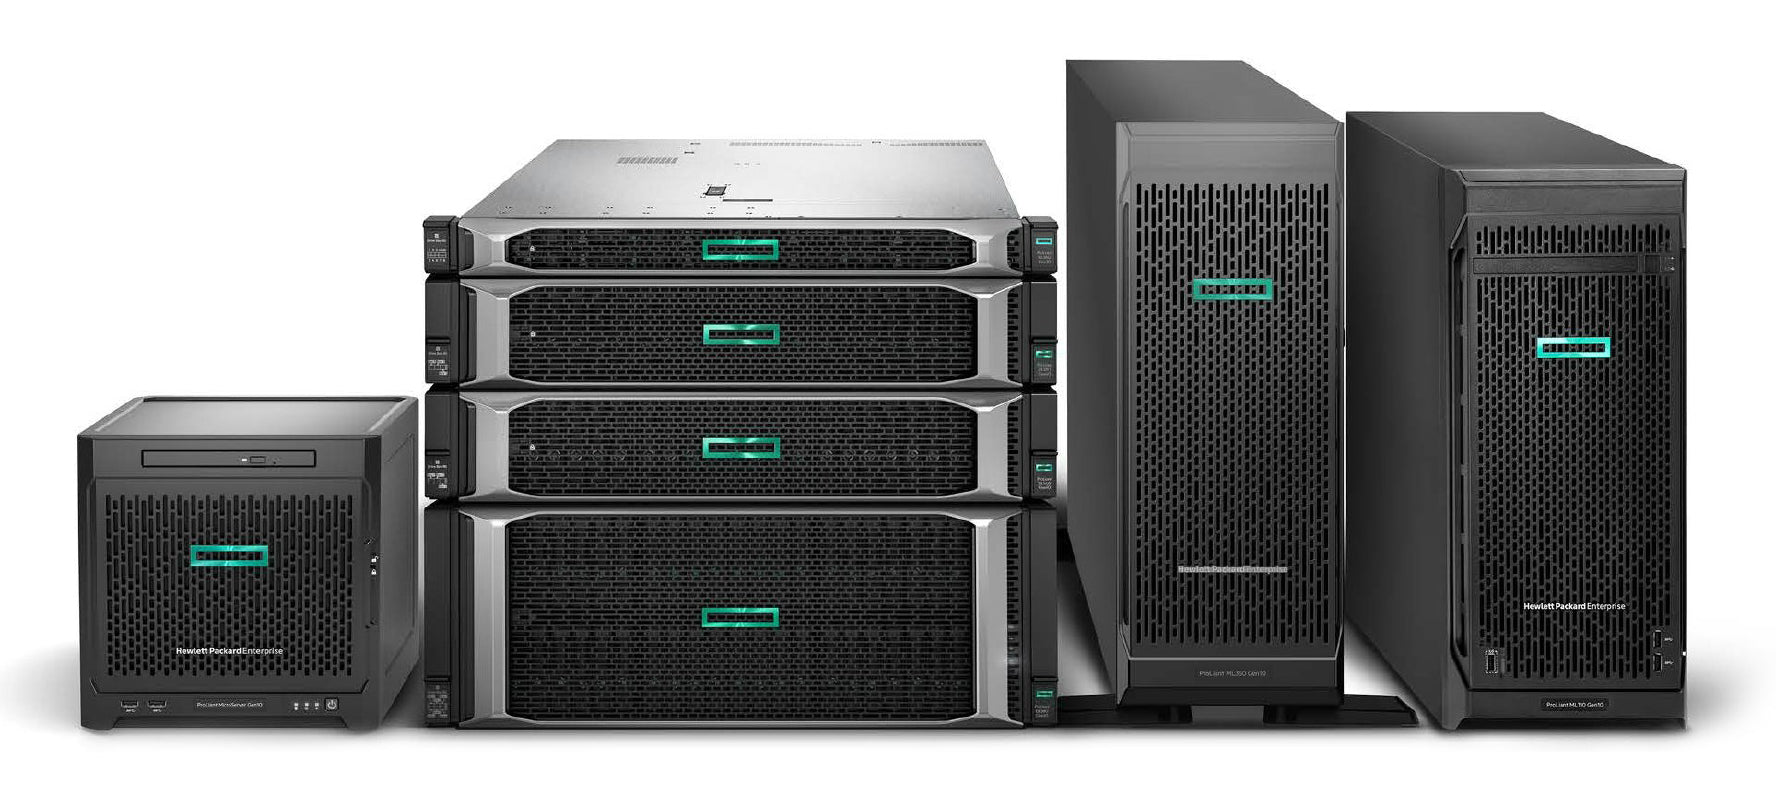 Refurbished HP Servers